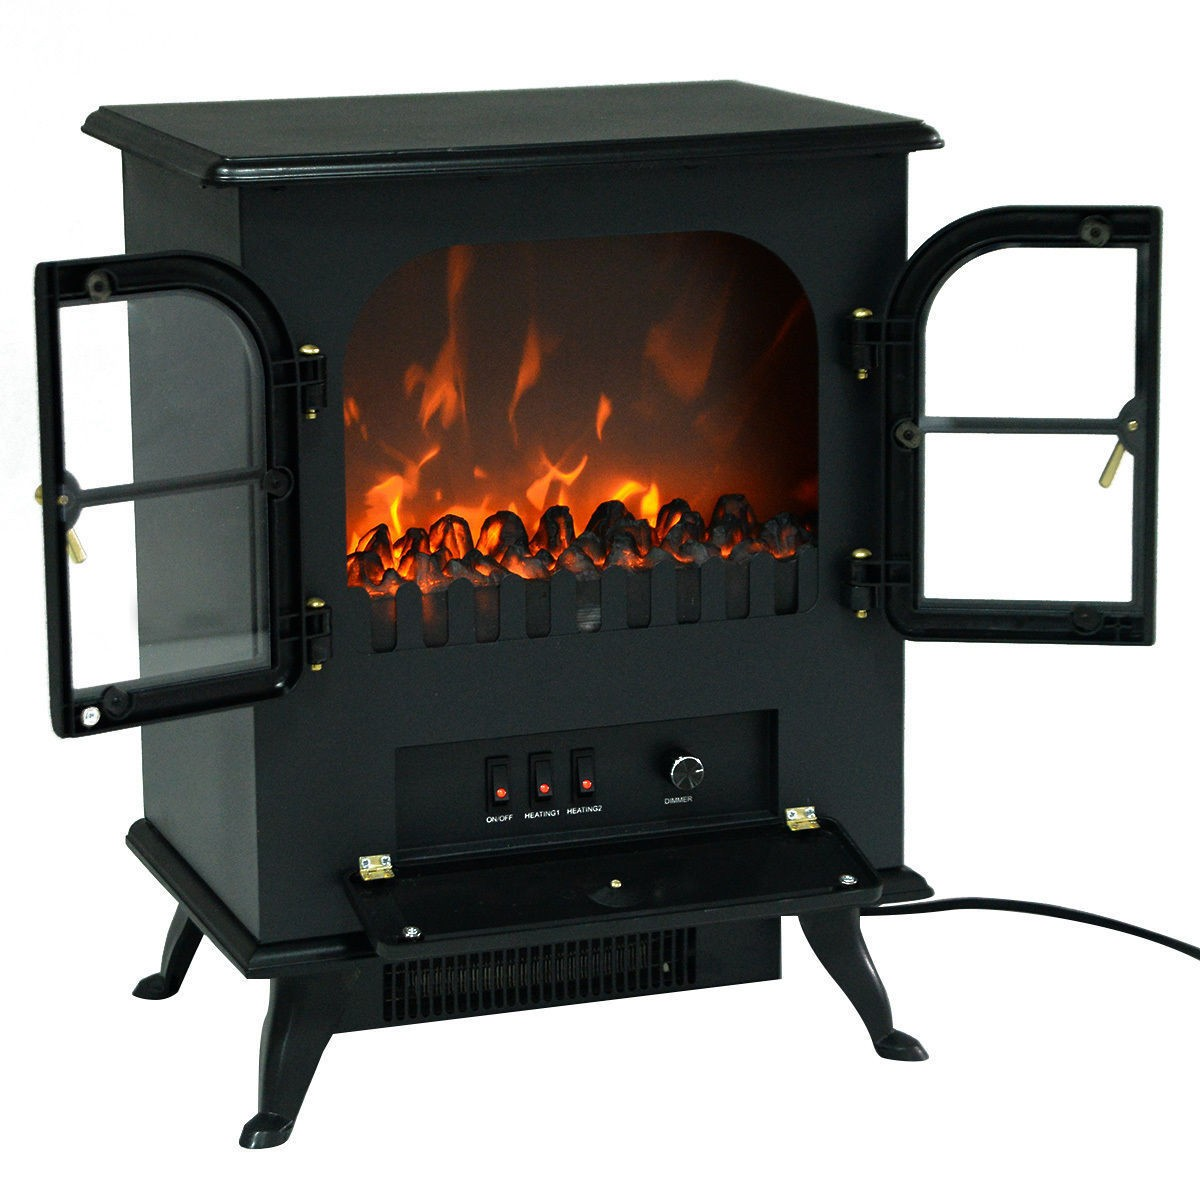 1500W Free Standing Electric Fireplace Heater Fire Flame Stove Wood Adjustable